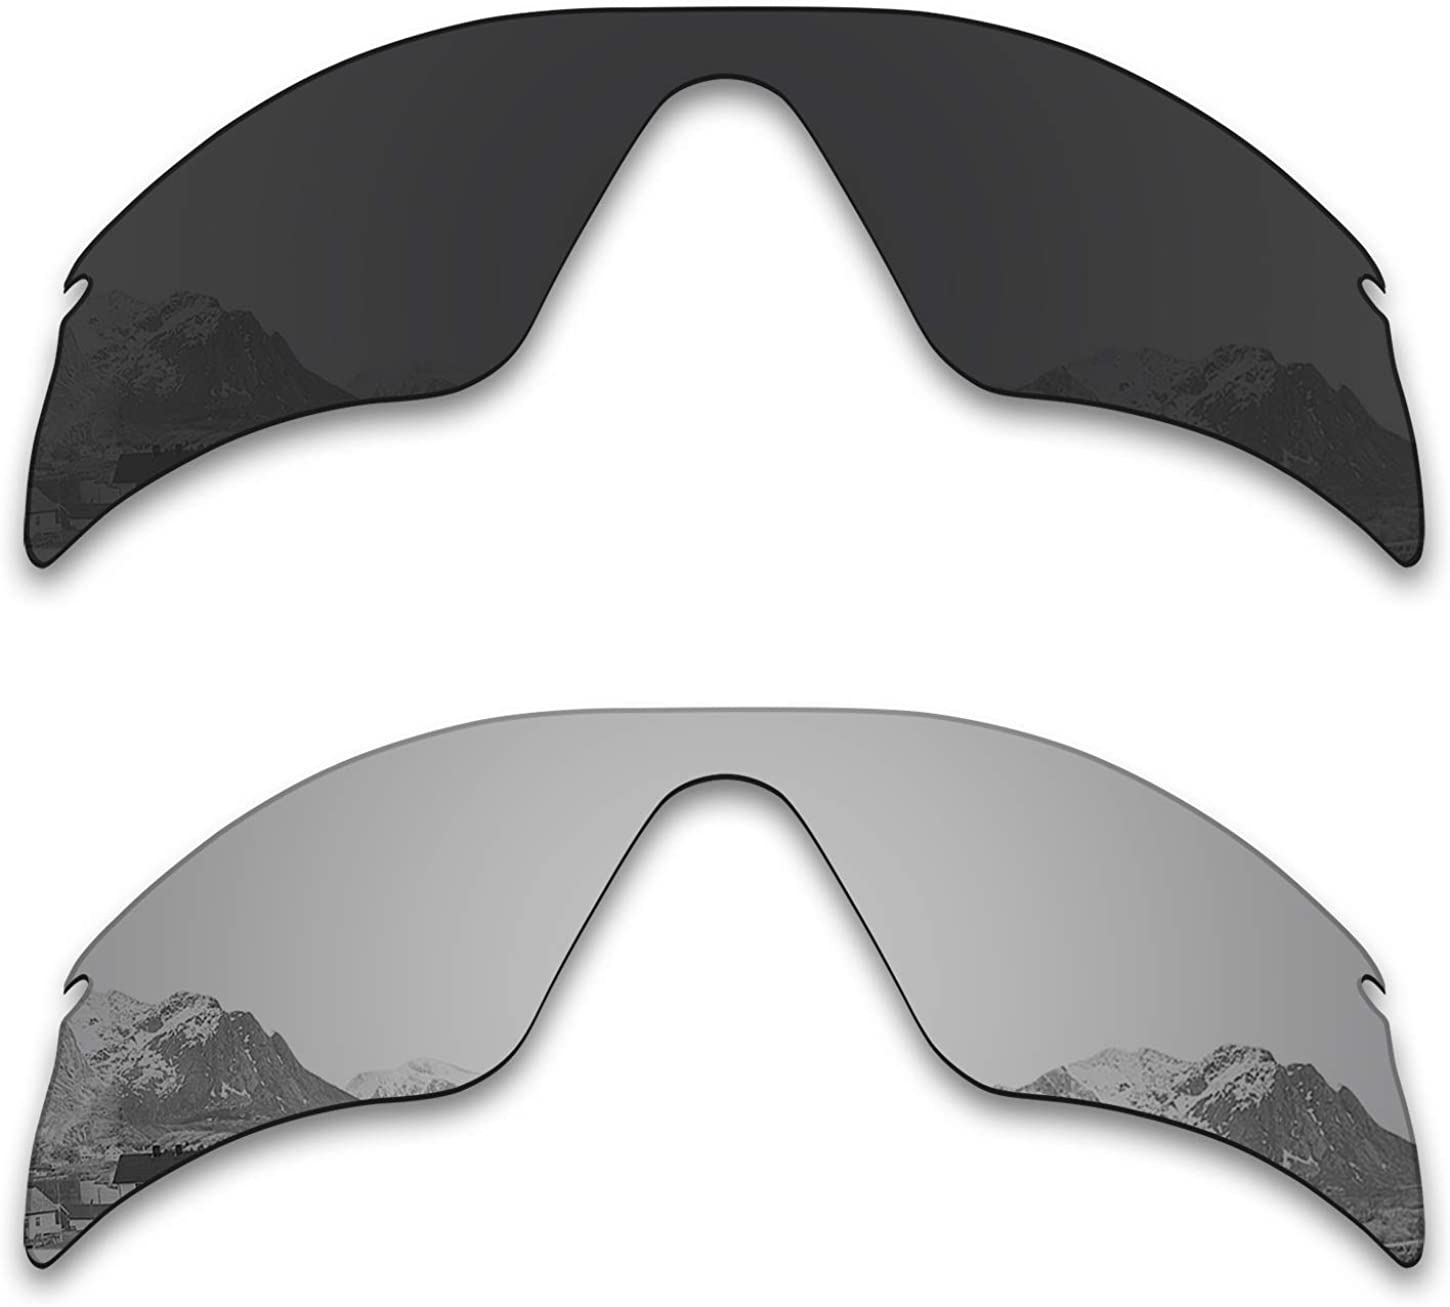 Puzzley Mirror Polarized Replacement Lenses for Oakley Radar Range Sunglasses - Rich Options